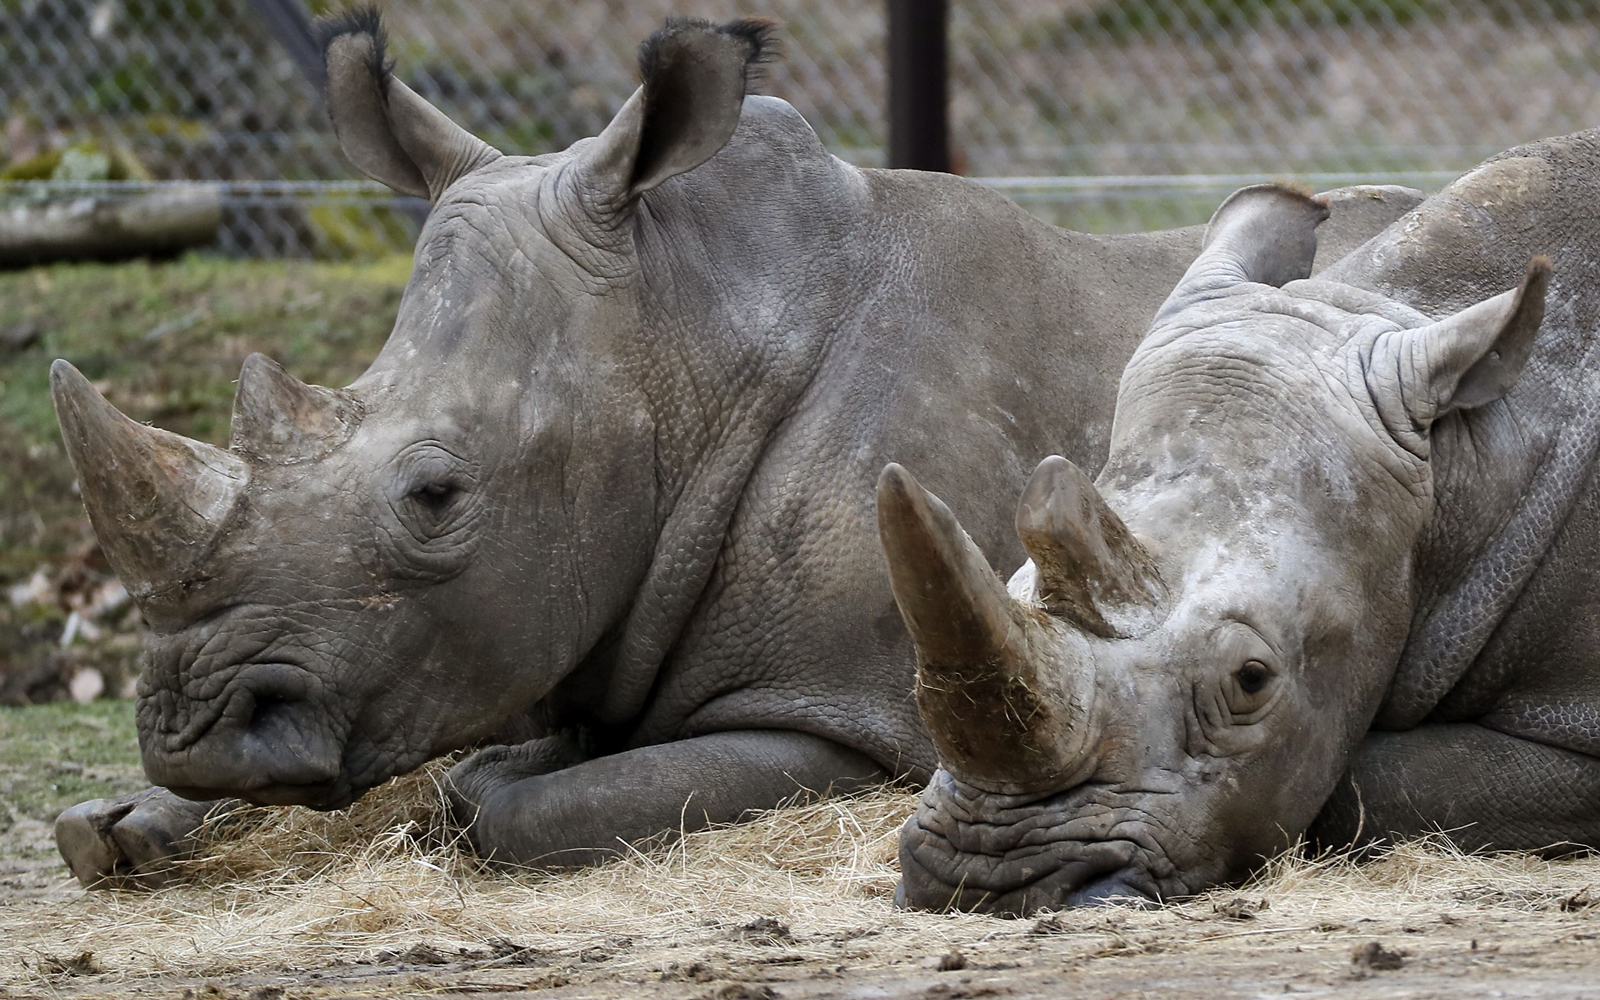 Czech Zoo Removing Rhinos' Horns to Ward Off Poachers